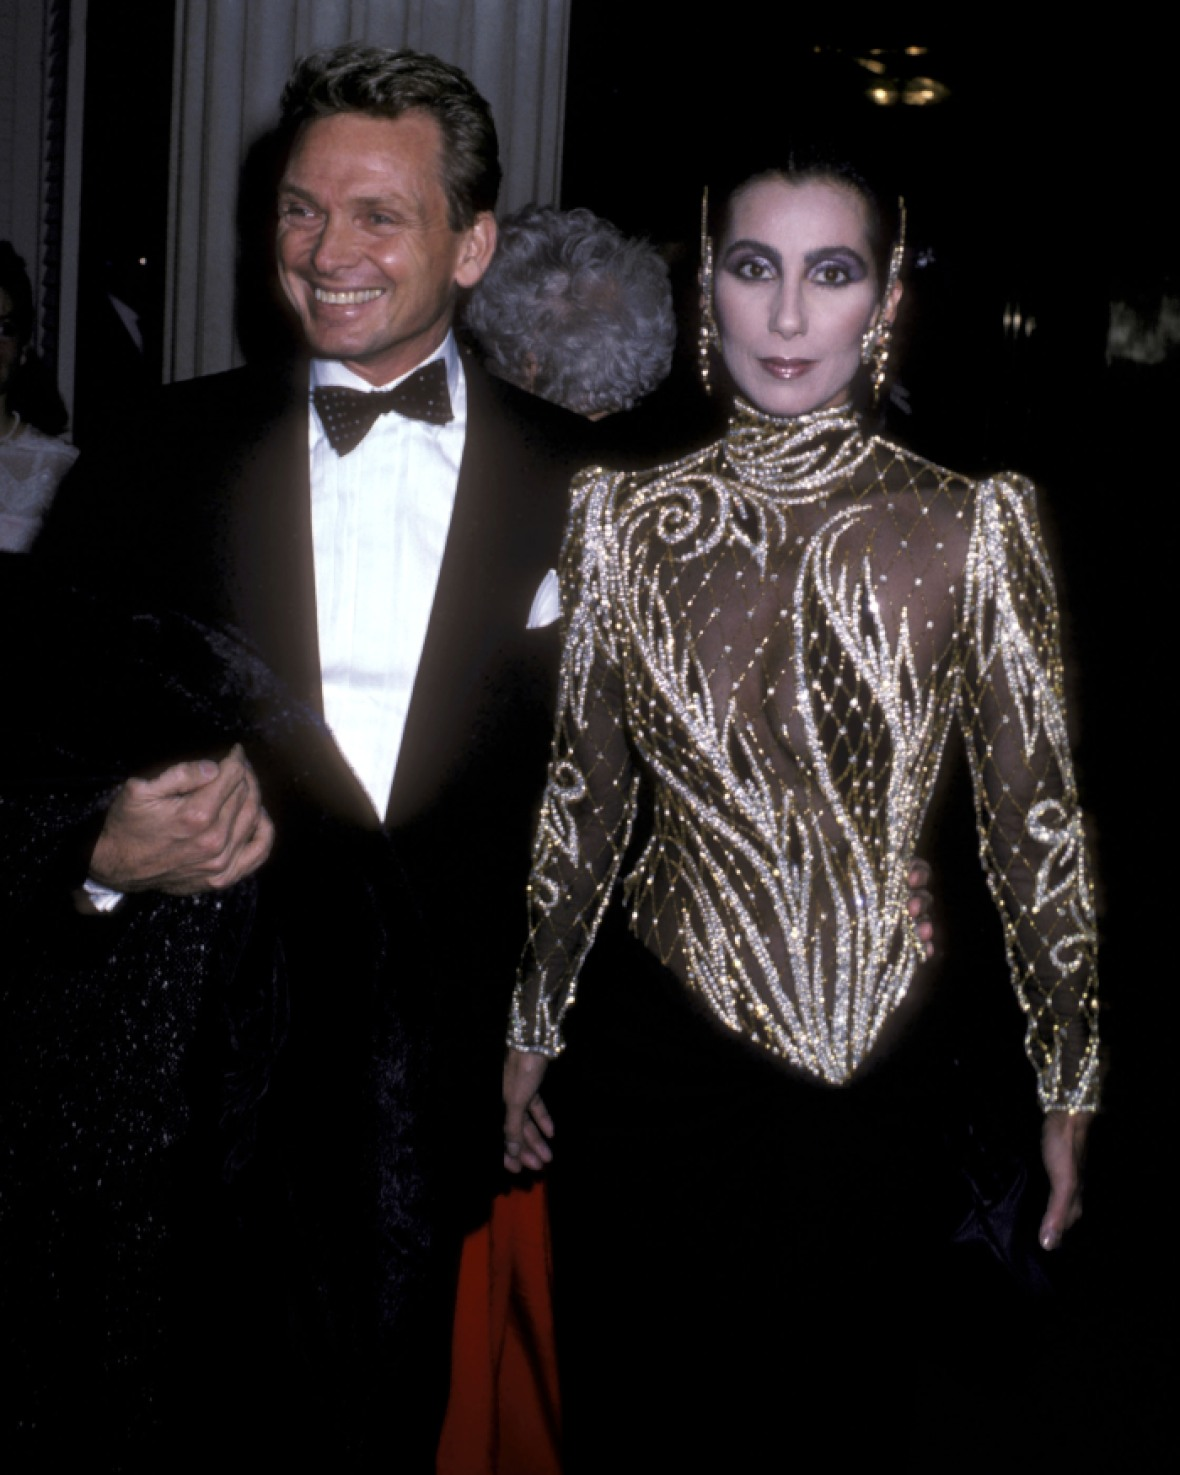 cher and bob mackie in 1985 getty